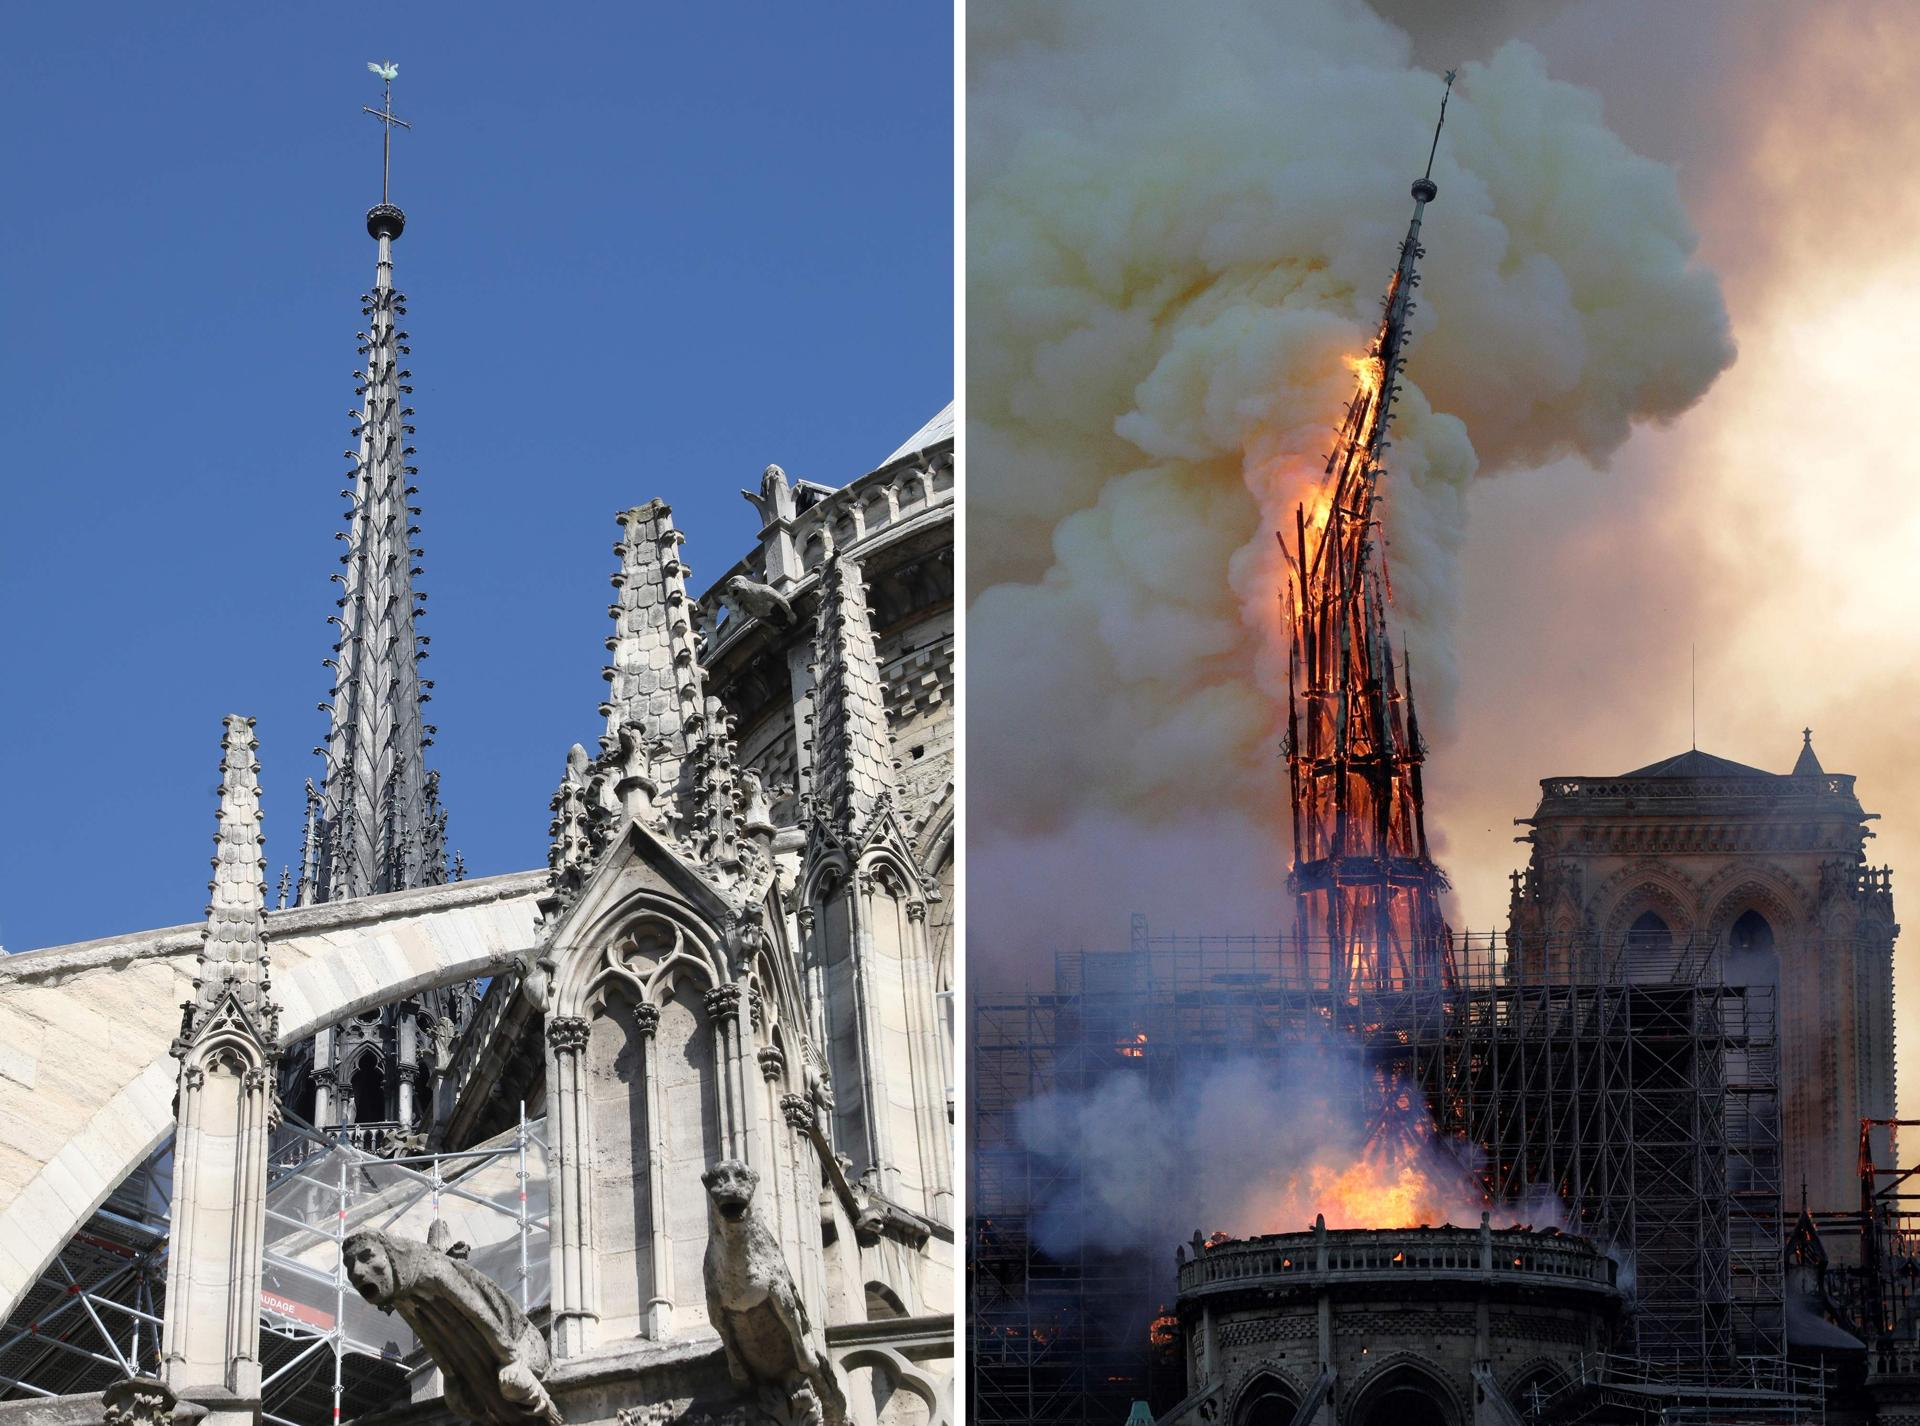 Photographs show the steeple before and after the fire at Notre Dame Cathedral.